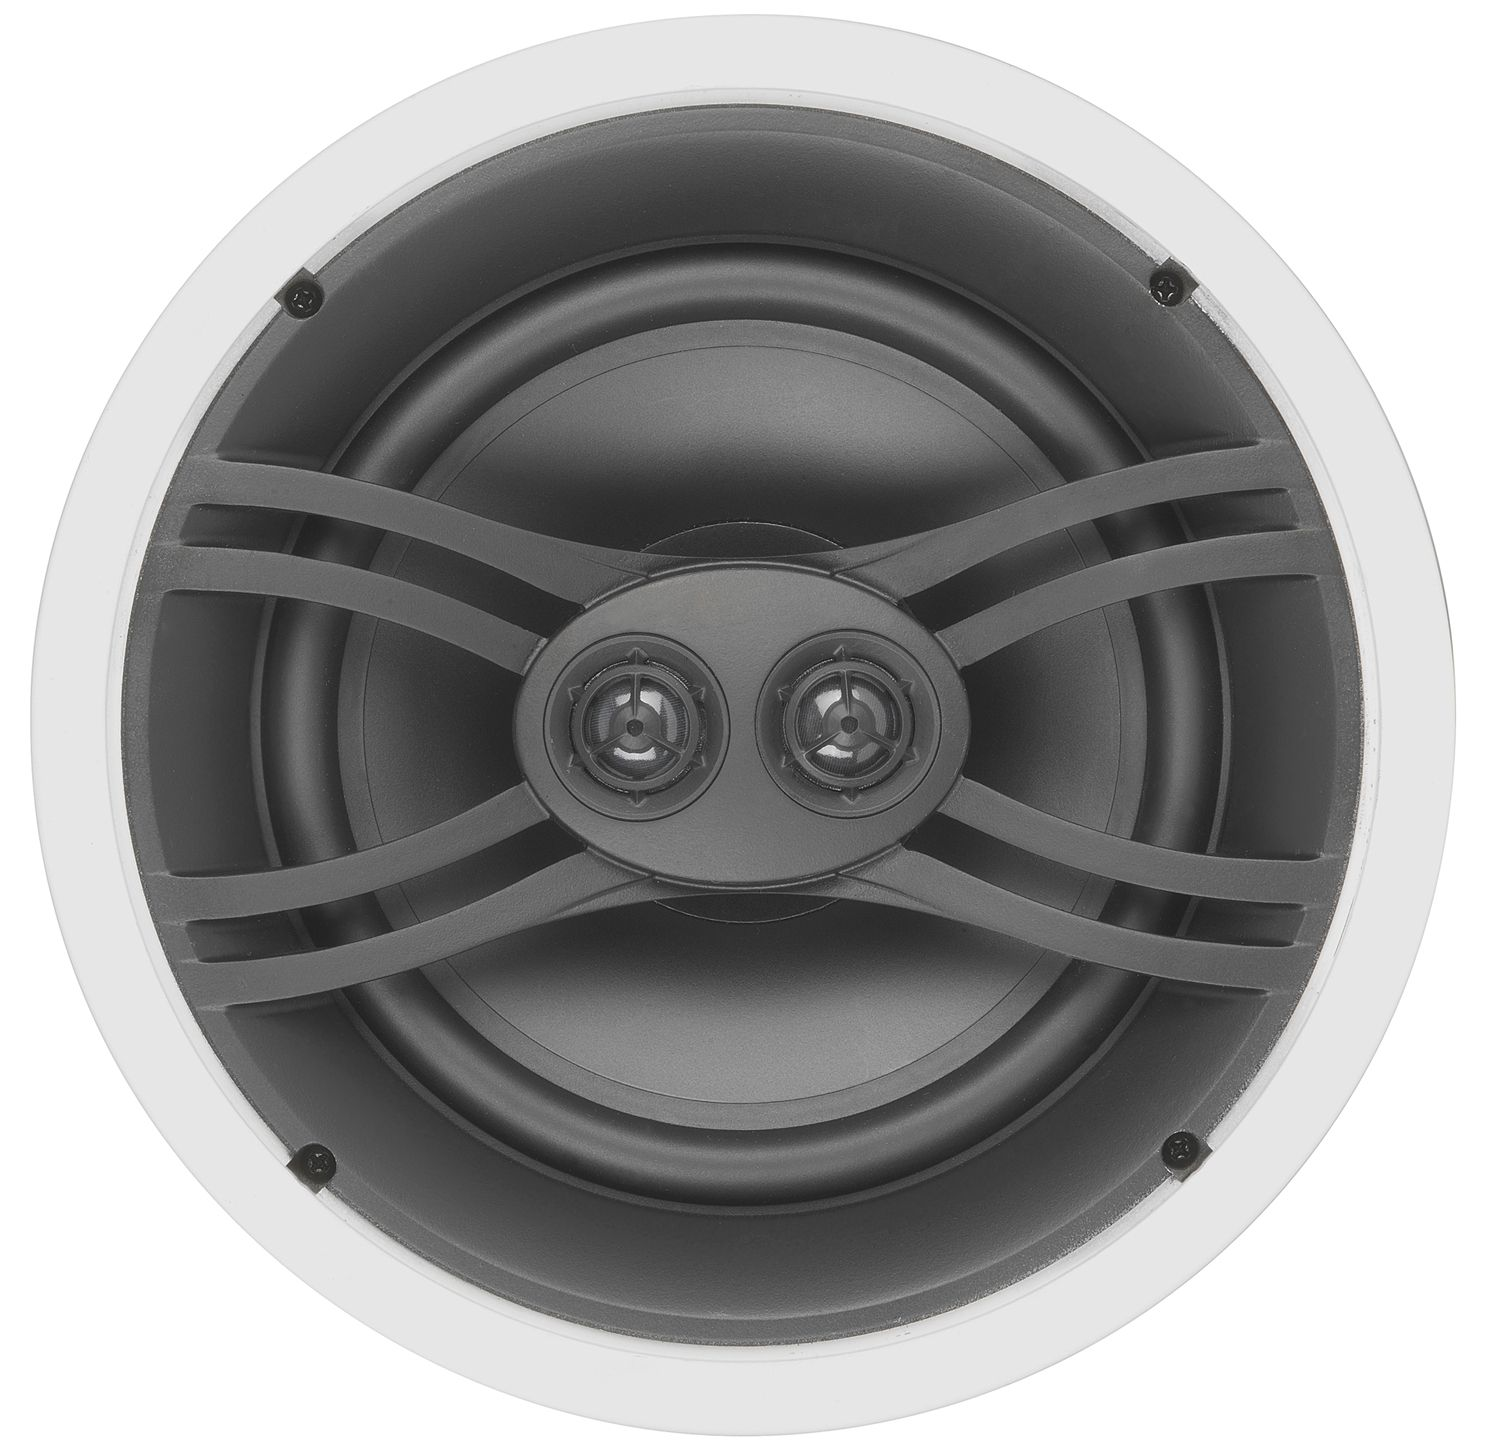 in-ceiling speakers | accessories4less